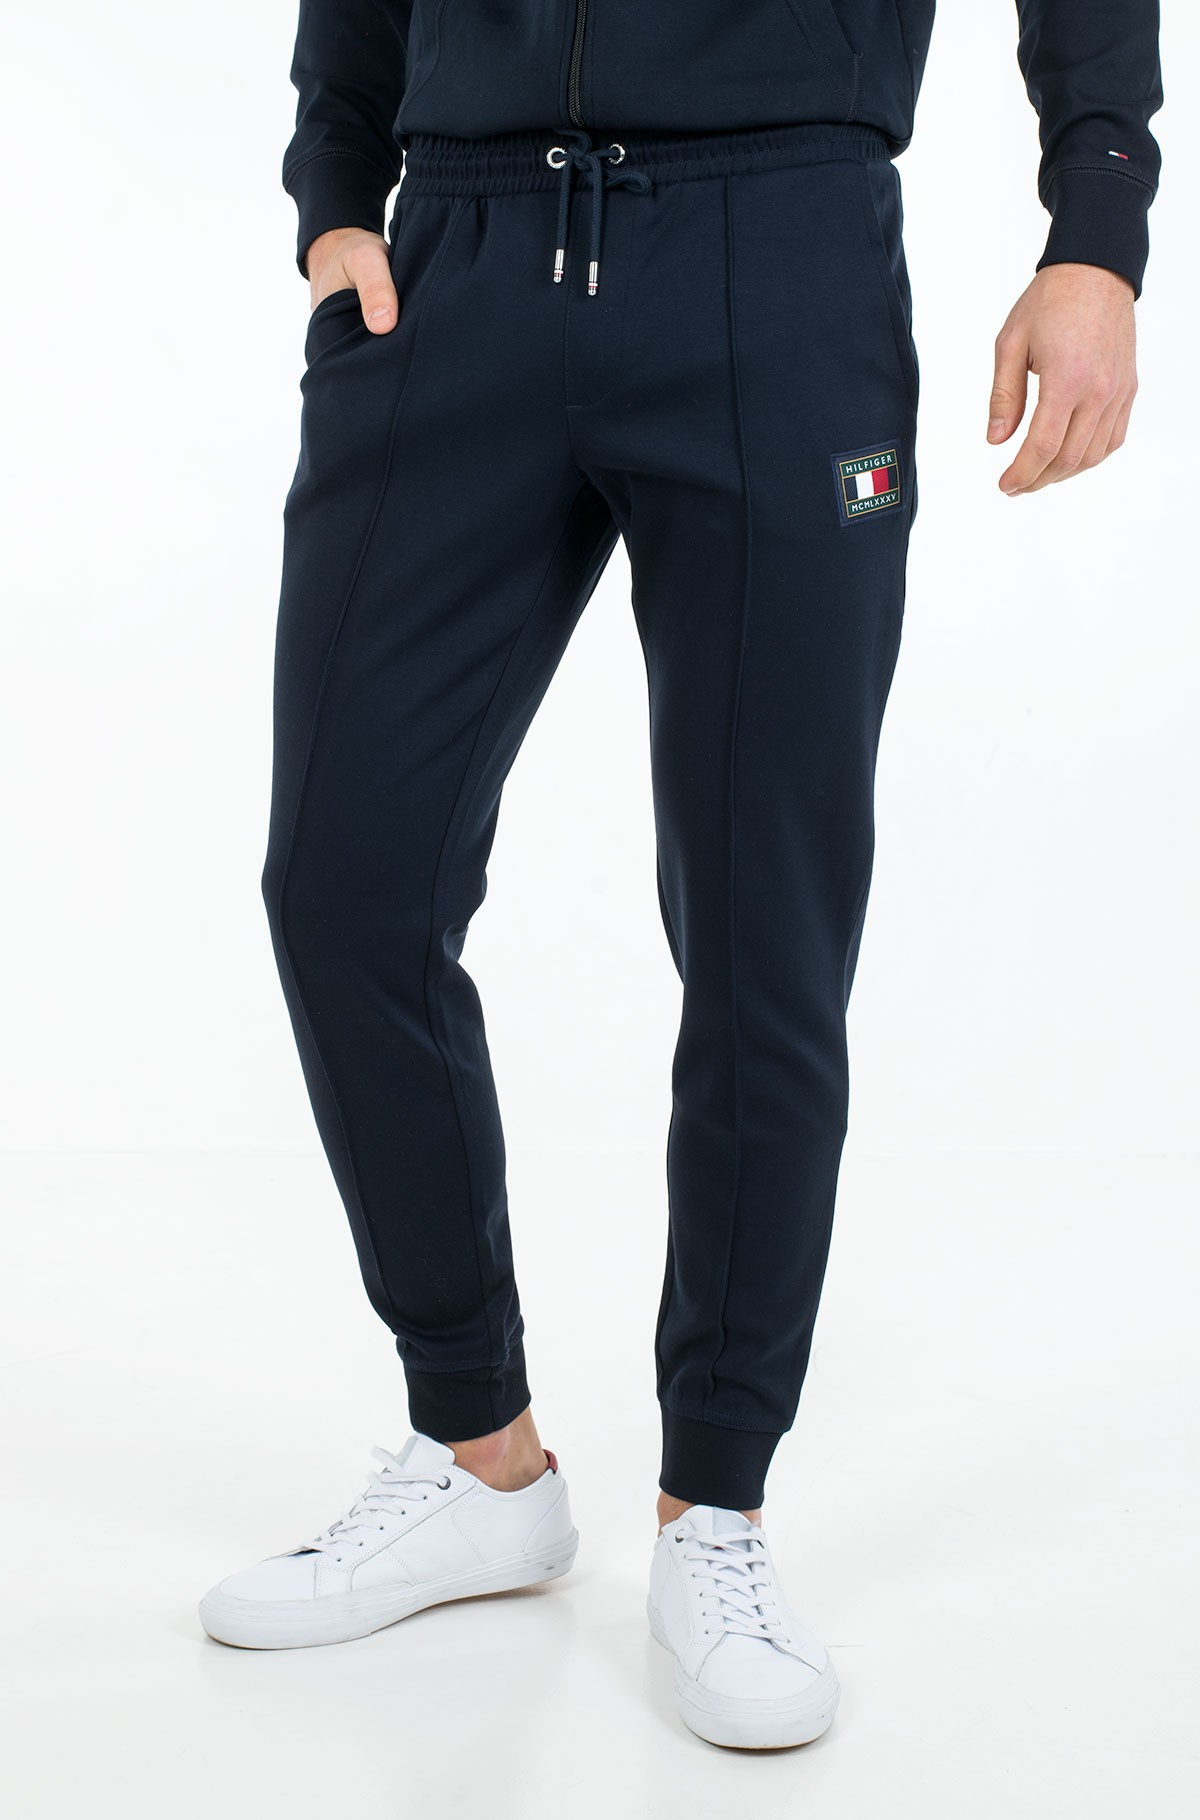 Sportinės kelnės ICON ESSENTIALS SWEATPANTS-full-1